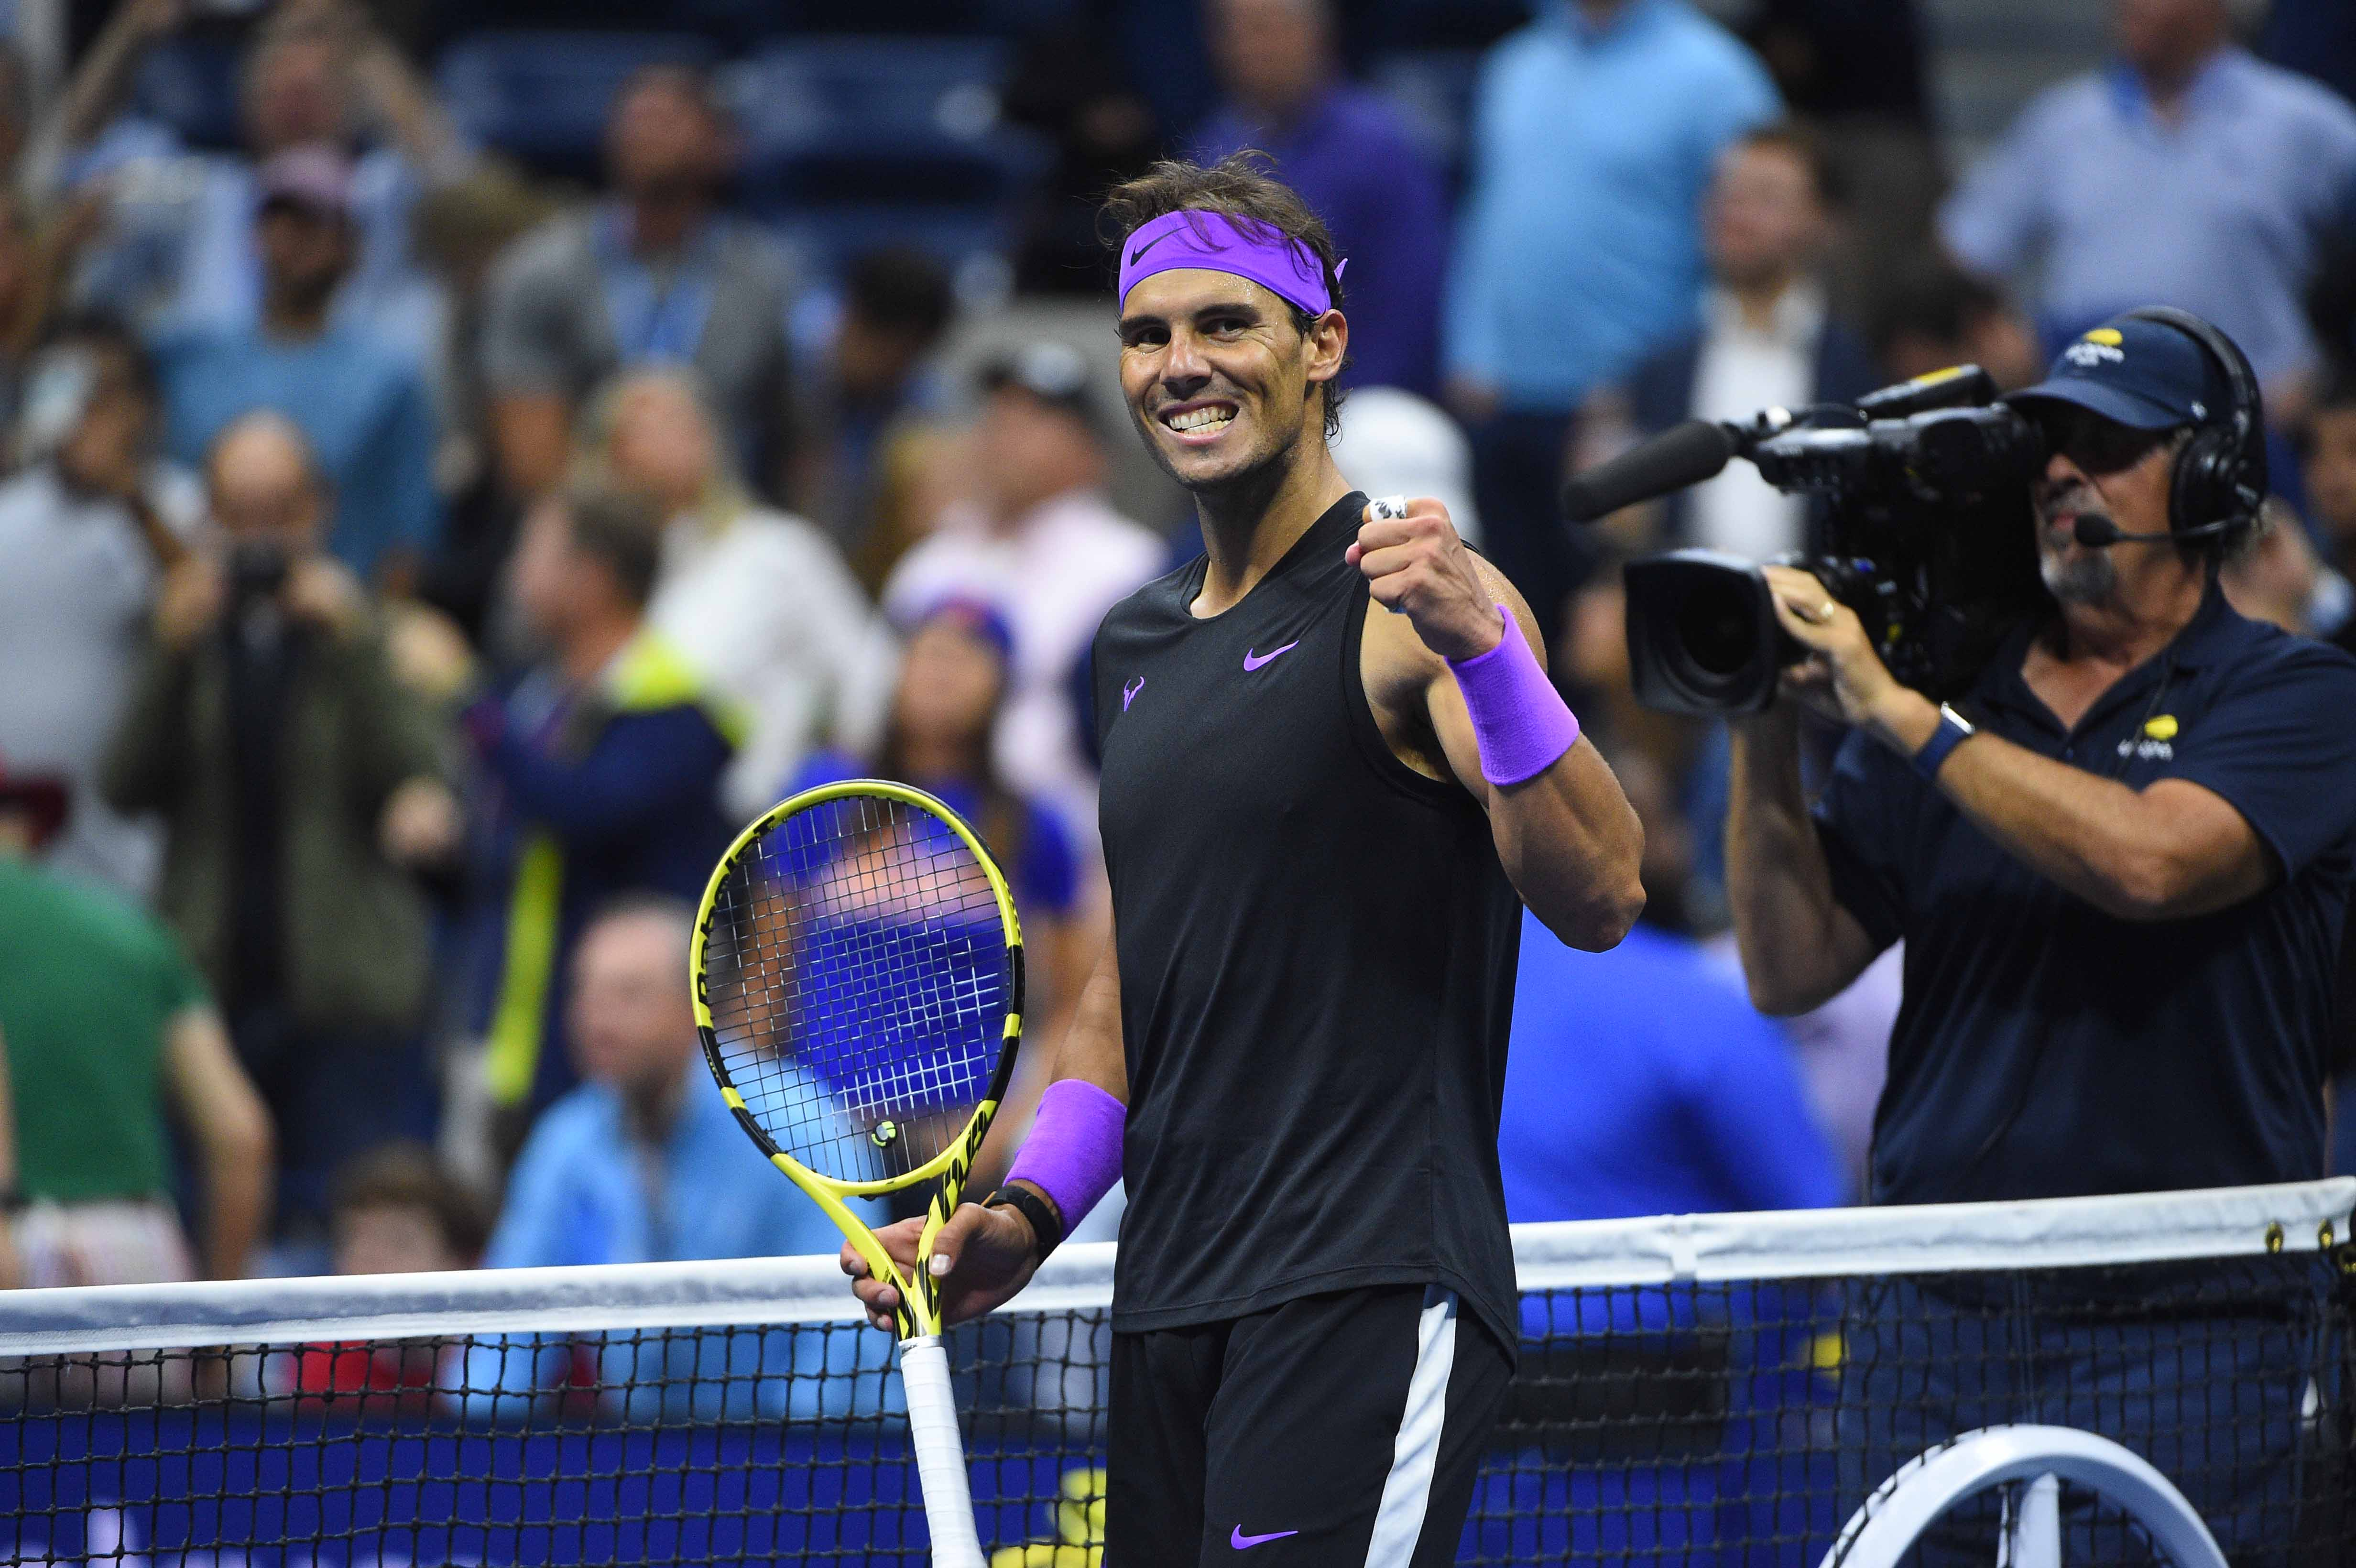 Rafael Nadal smiling as he just qualified for the 2019 US Open final